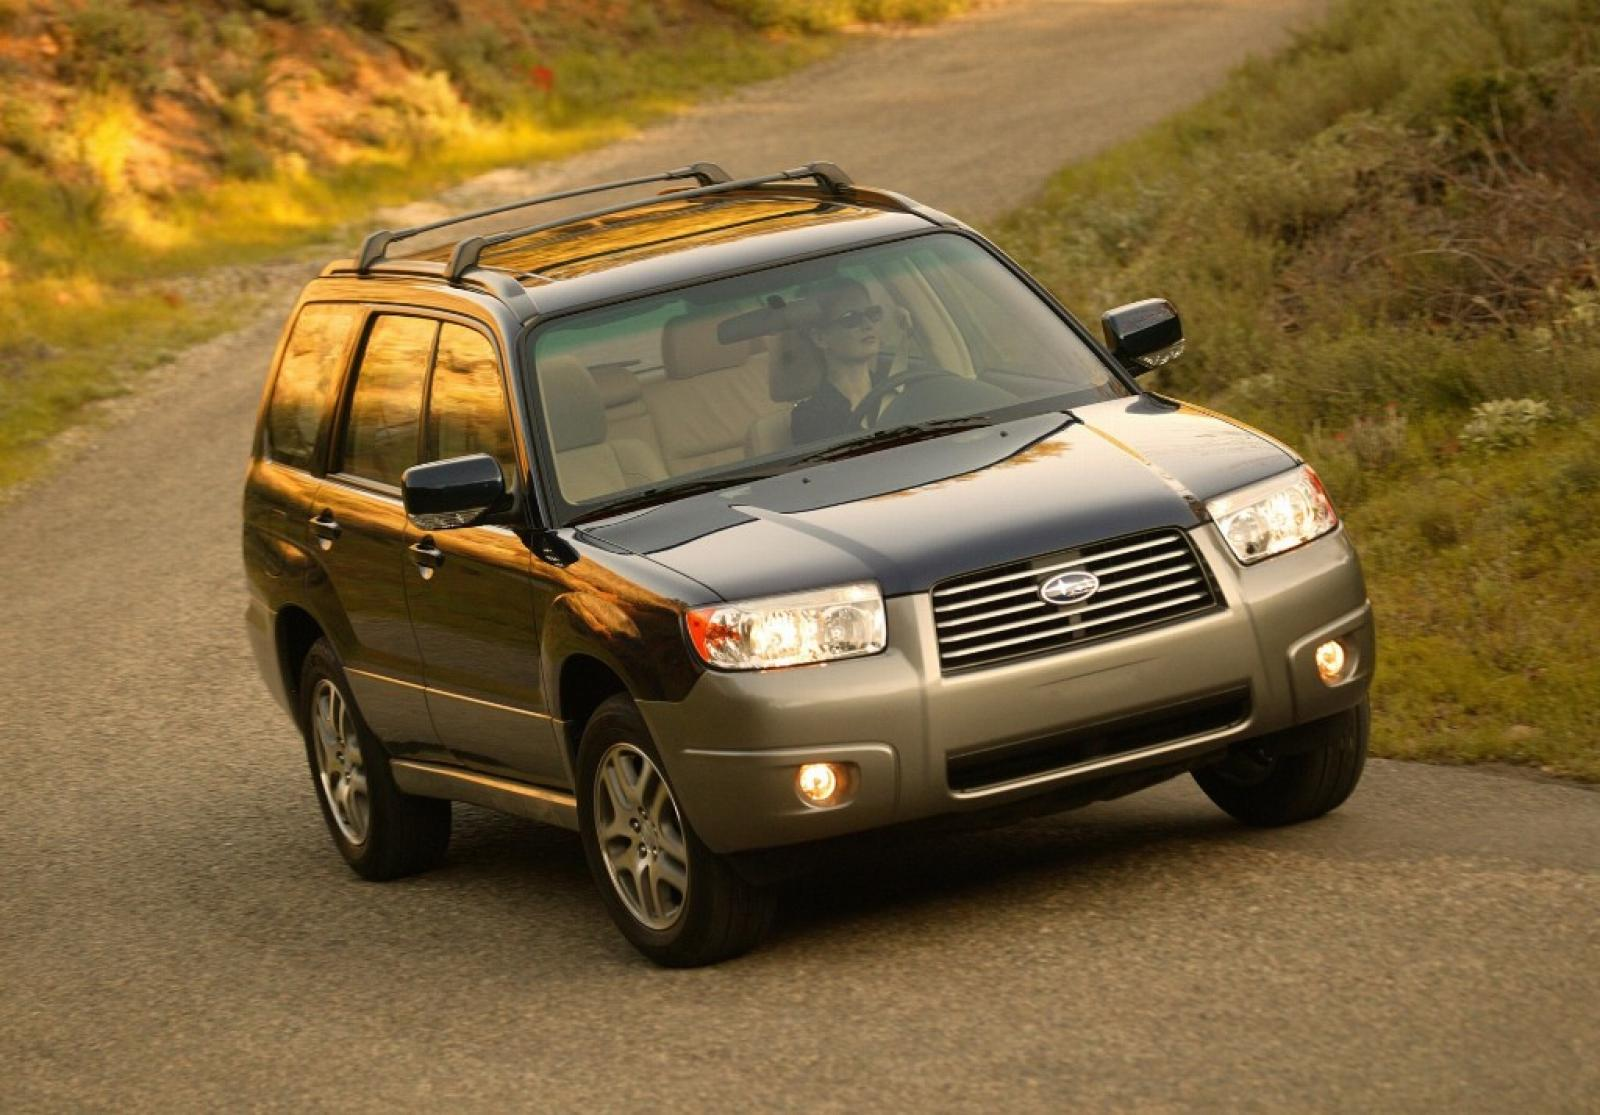 2006 subaru forester information and photos zombiedrive. Black Bedroom Furniture Sets. Home Design Ideas